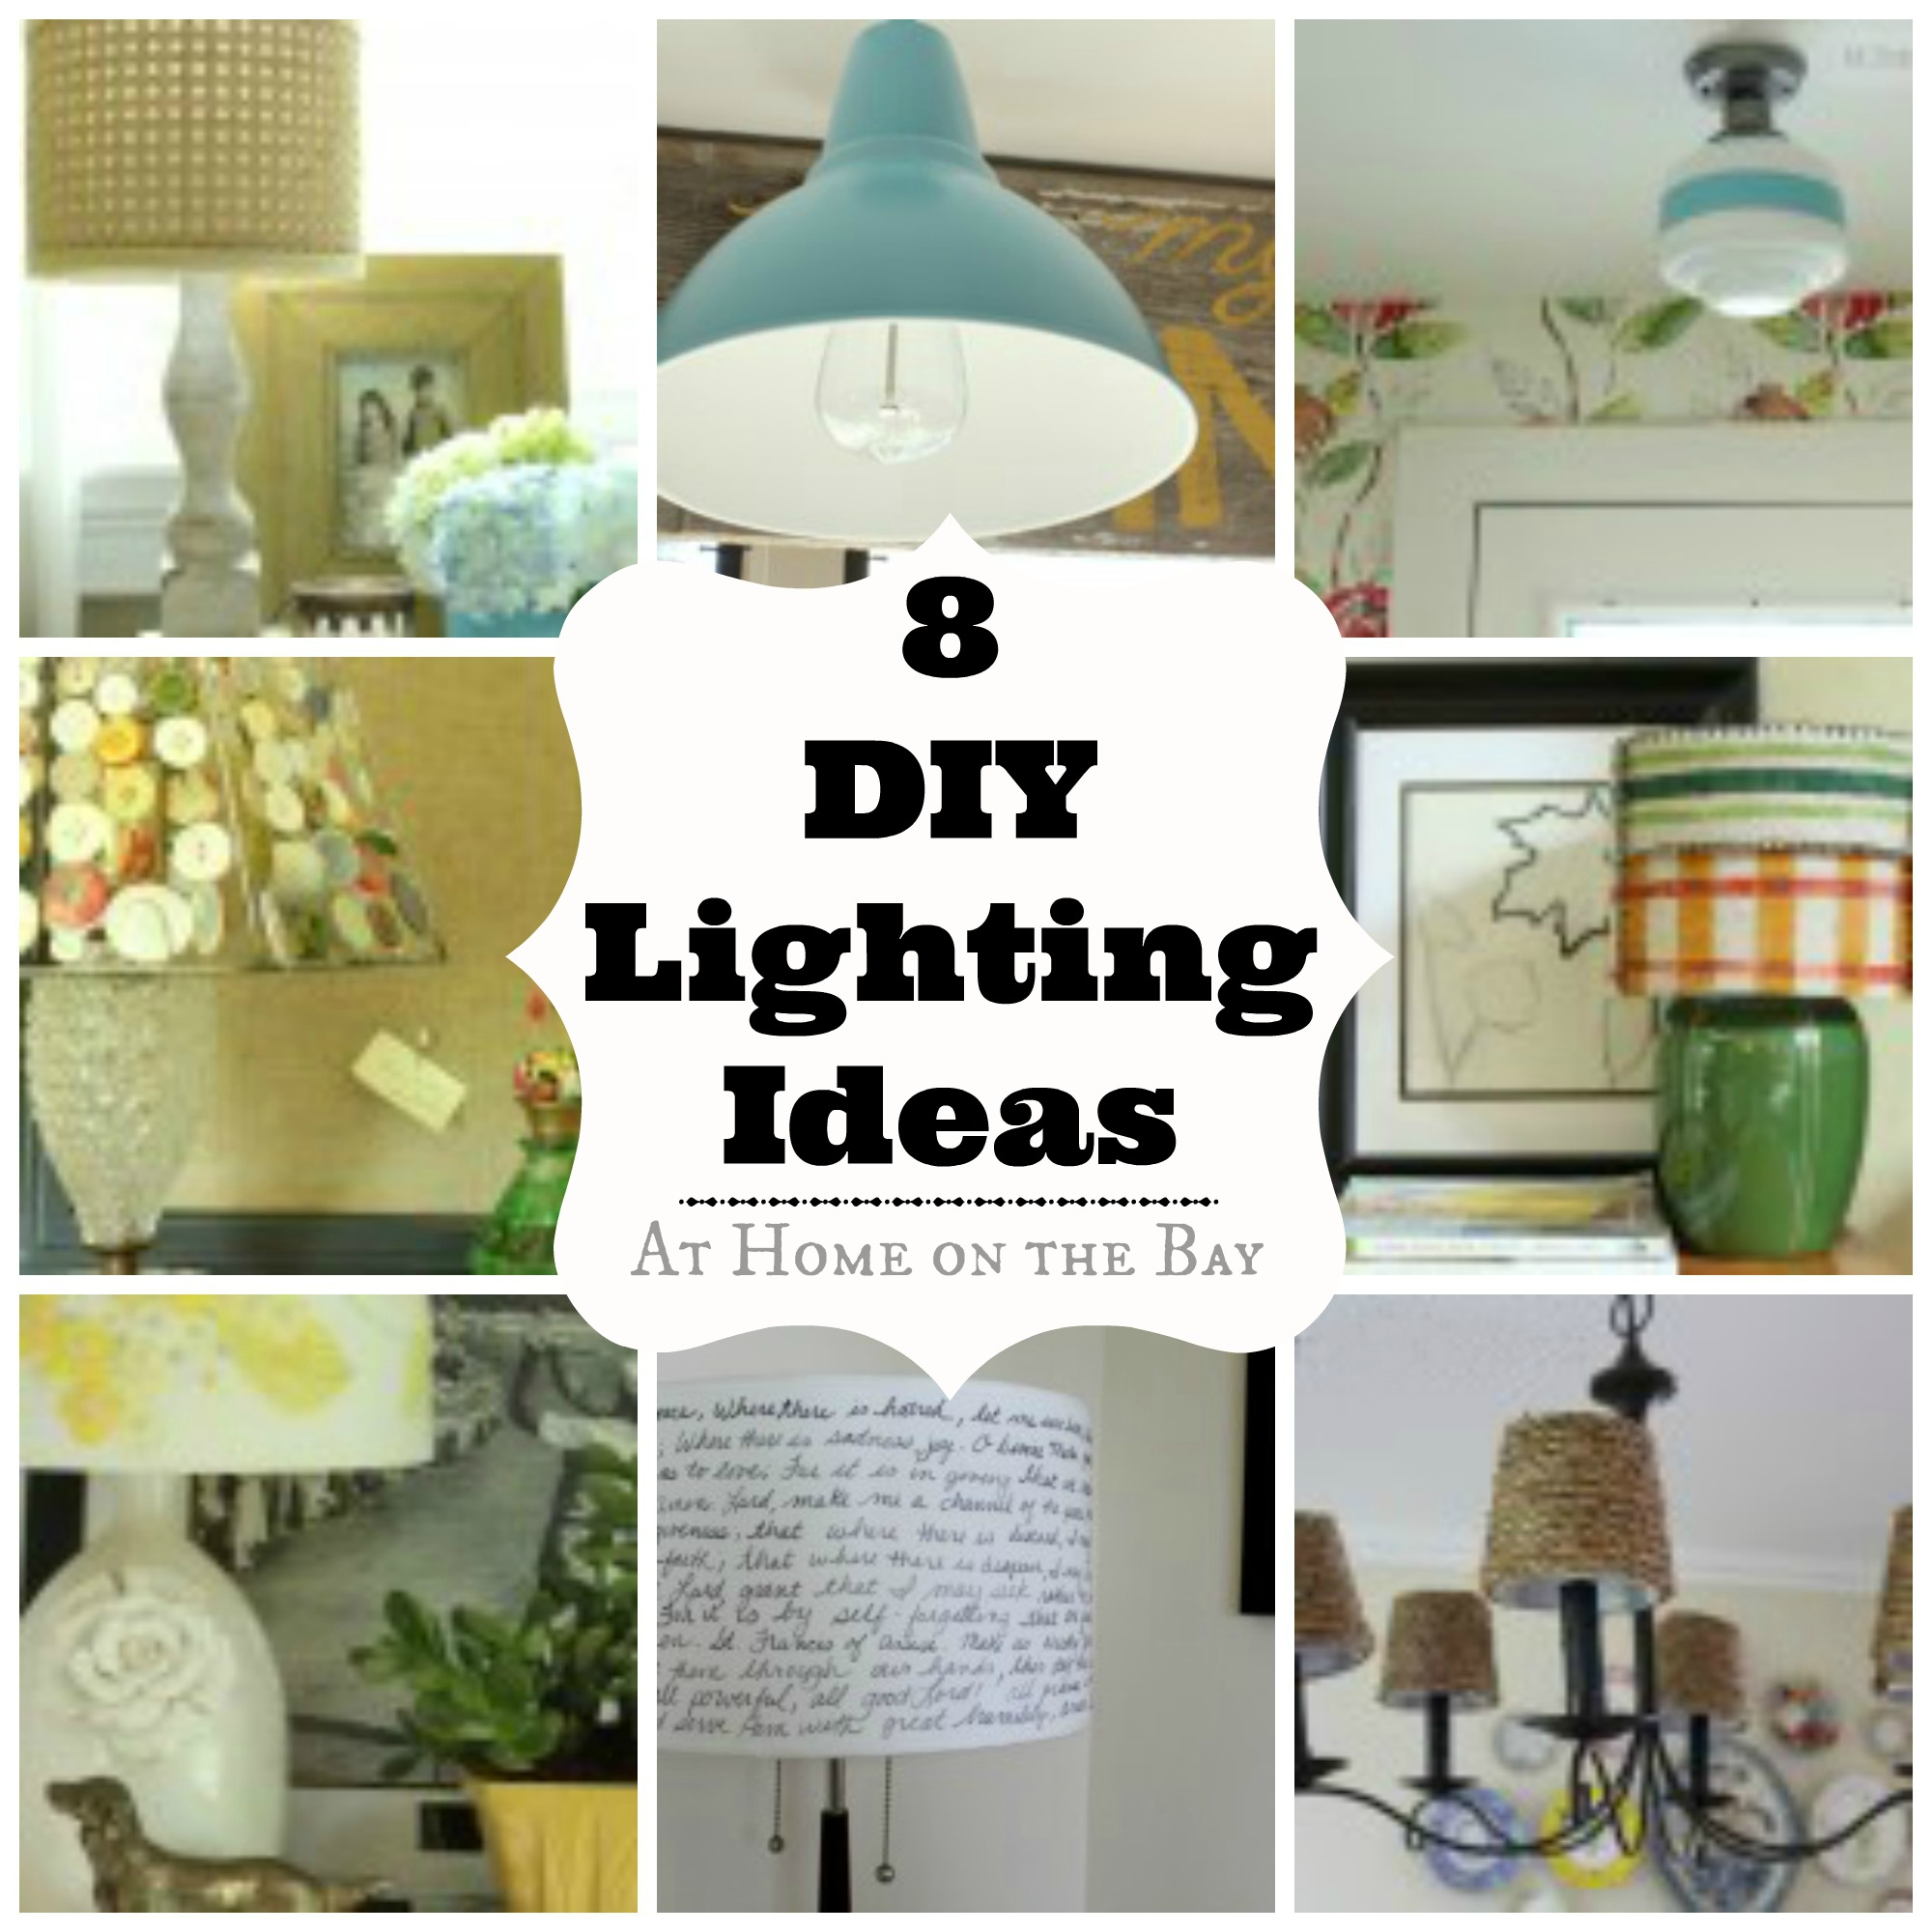 8 DIY Lighting Ideas - At Home on the Bay